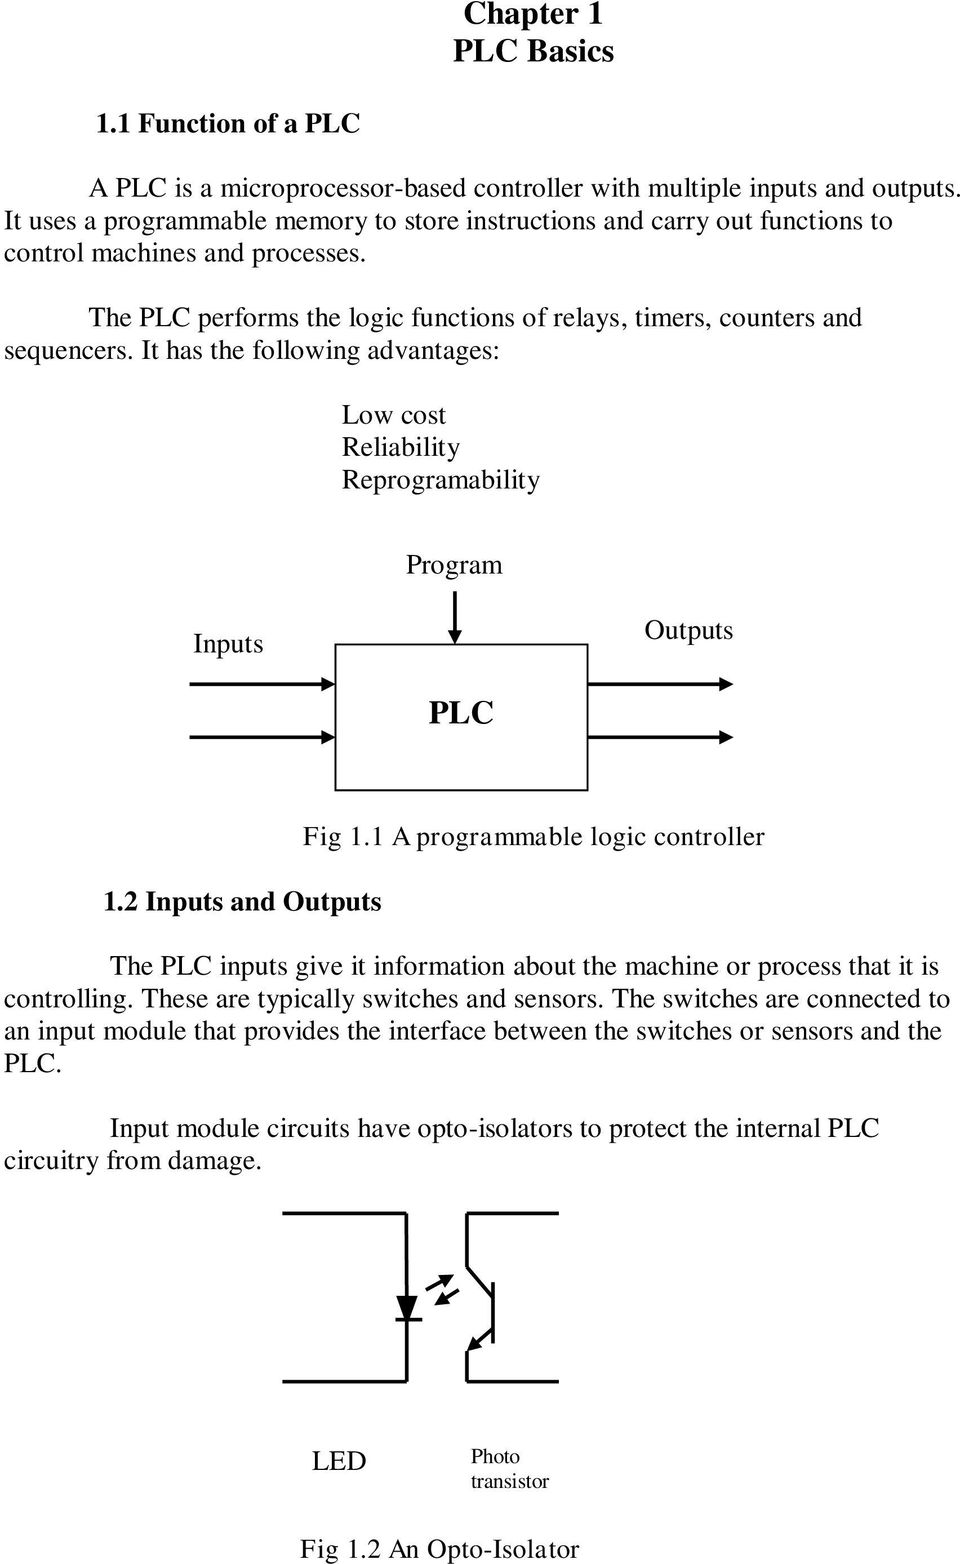 Plc Programming For Industrial Automation Kevin Collins Pdf Circuit Diagram Dc Motor Control By A It Has The Following Advantages Low Cost Reliability Reprogramability Program Inputs Outputs 12